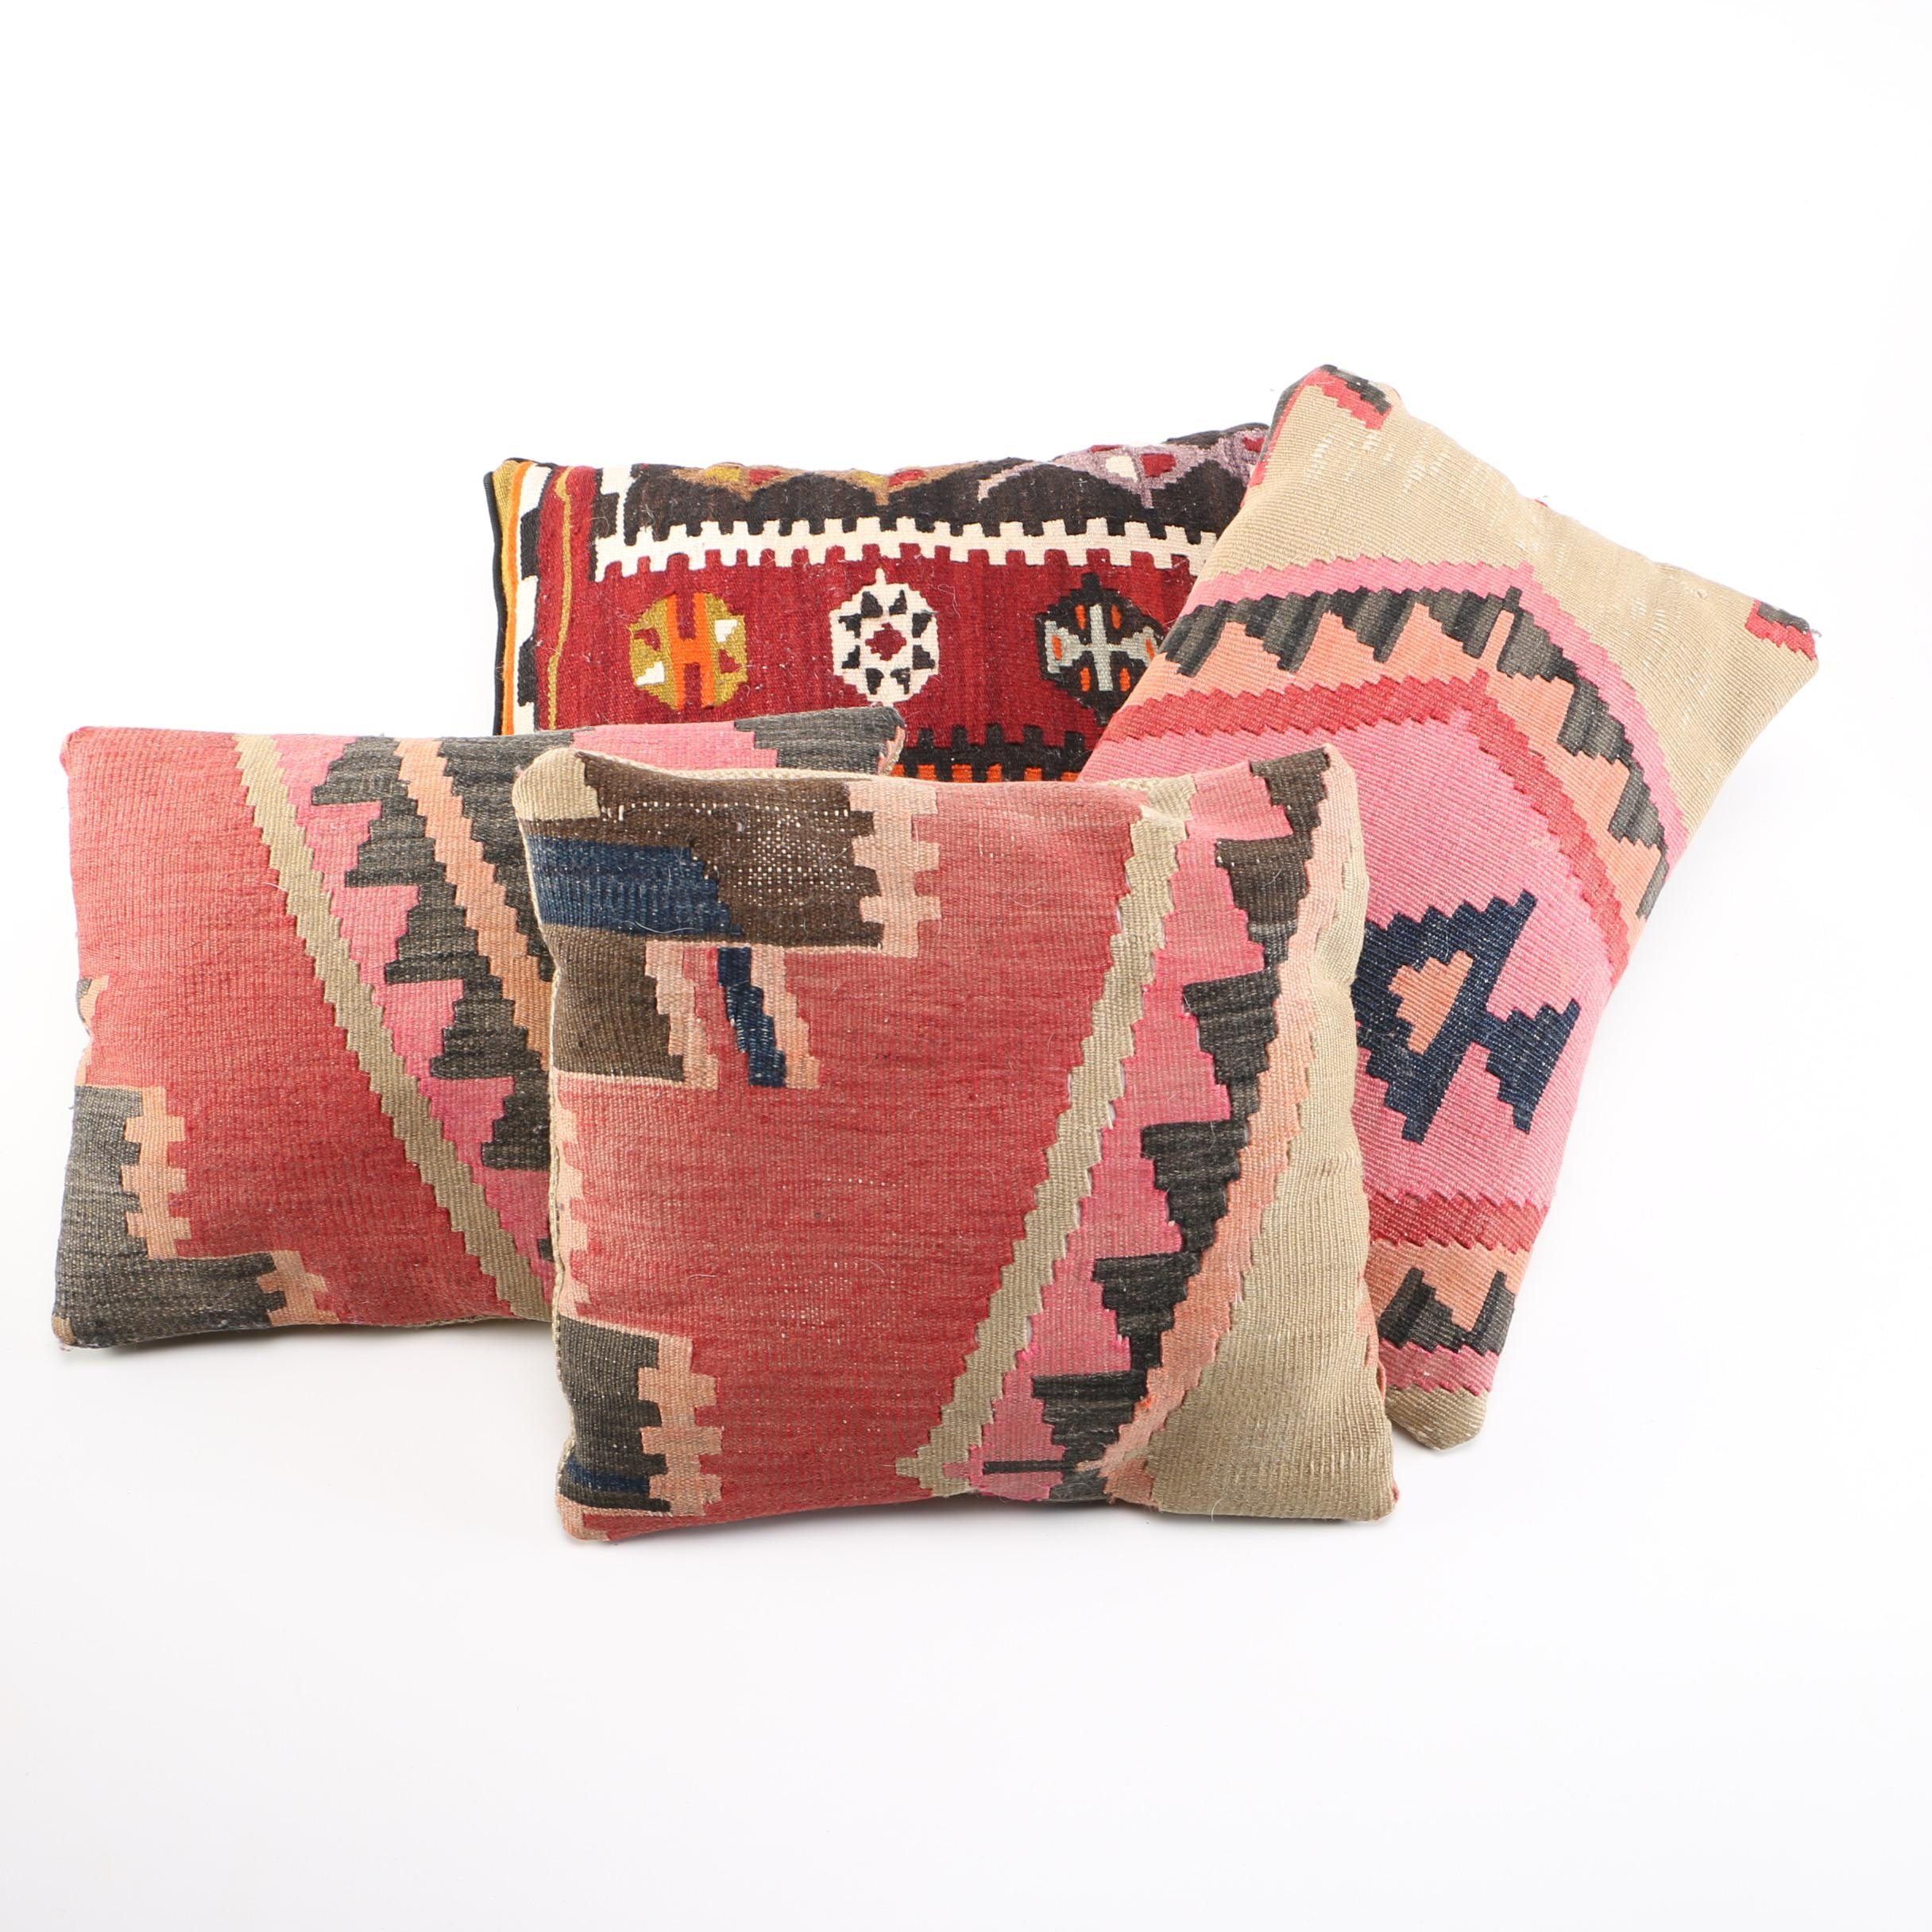 Kilim Style Accent Pillows